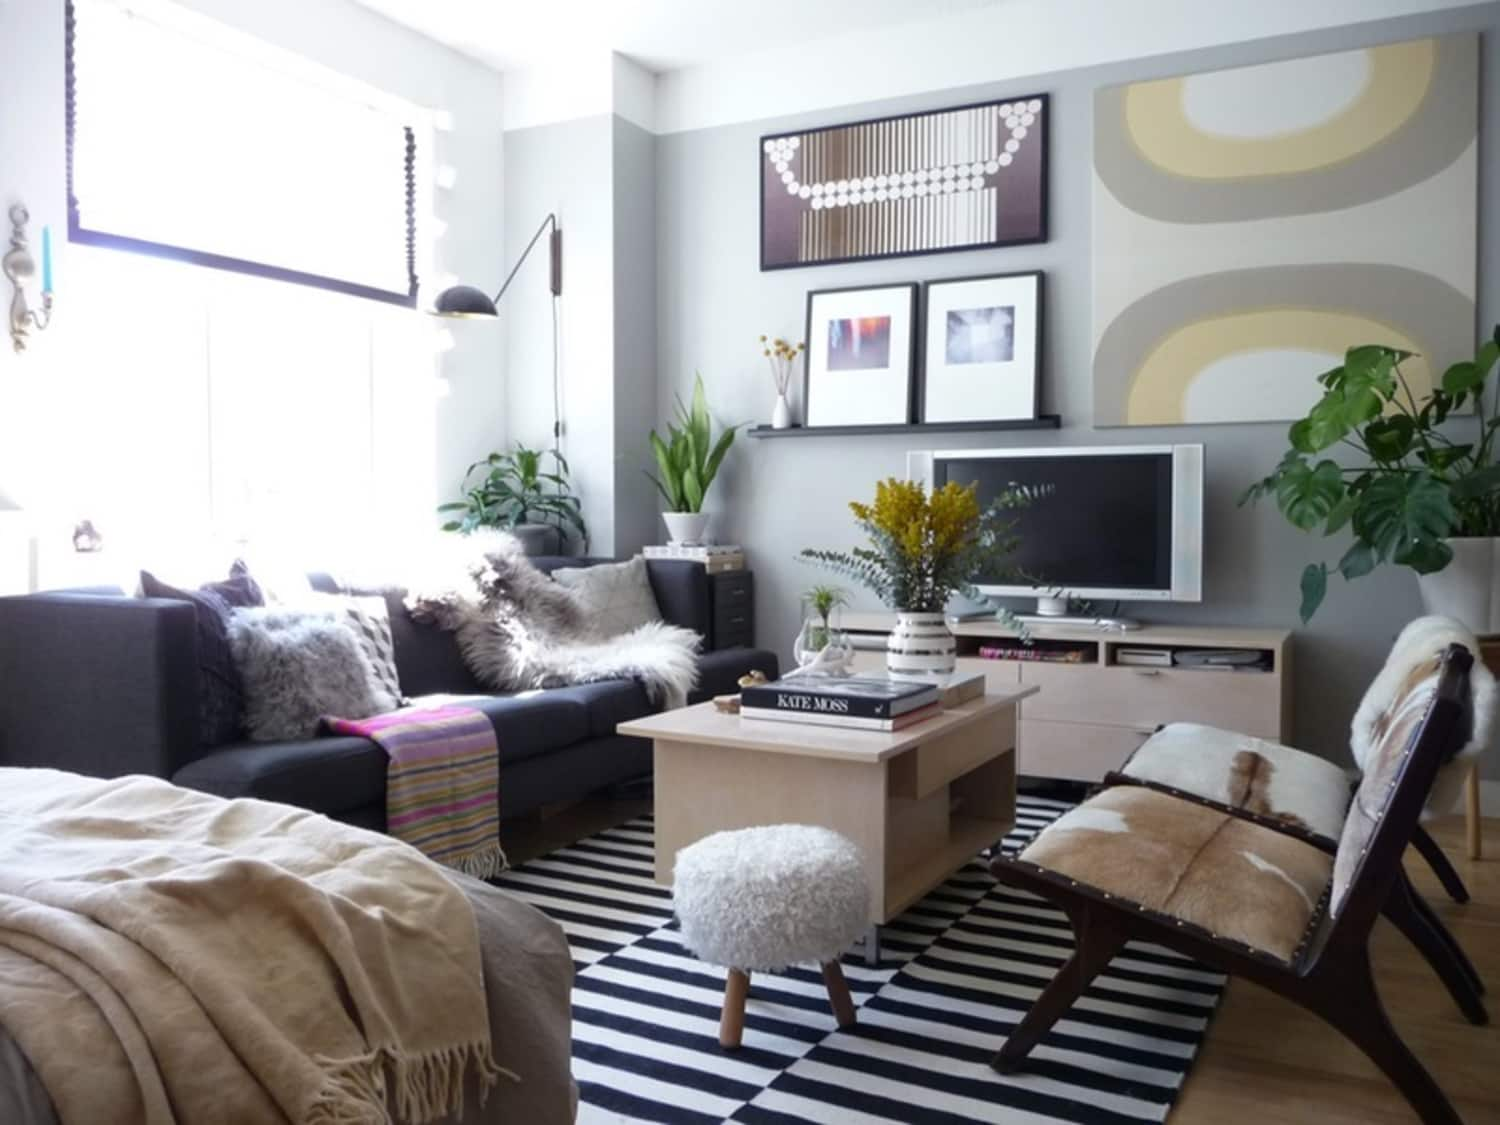 5 genius ideas for how to layout furniture in a studio apartment apartment therapy. Black Bedroom Furniture Sets. Home Design Ideas